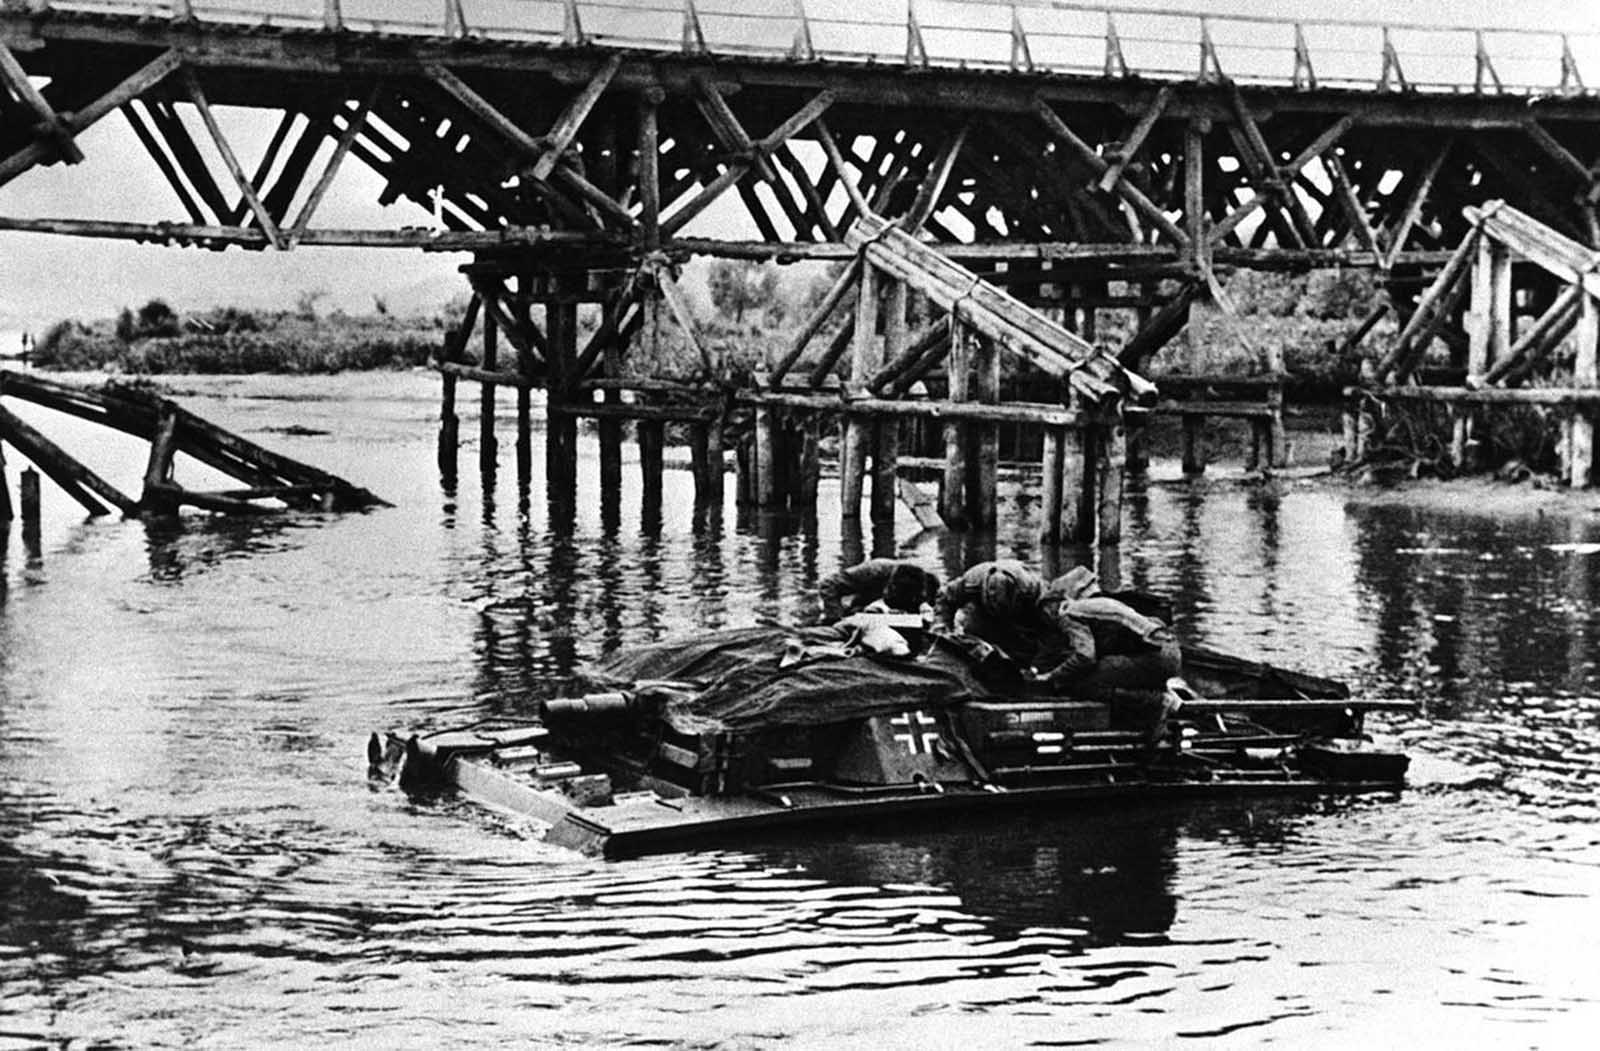 German soldiers crossing a Russian River on their tank on August 3, 1942.